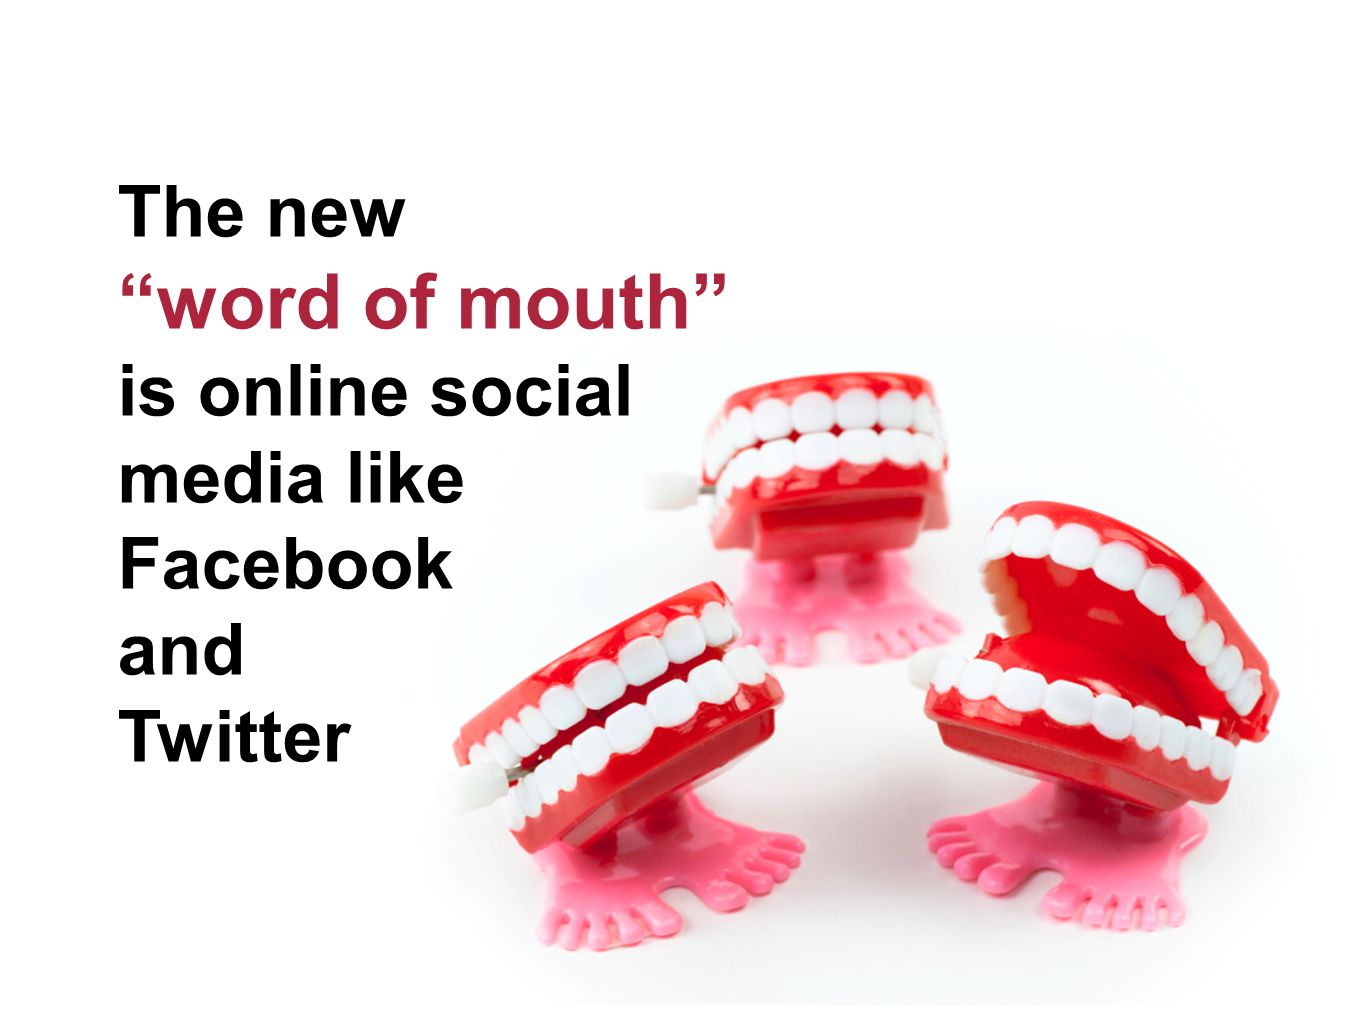 The new word of mouth is online social media like Facebook and Twitter